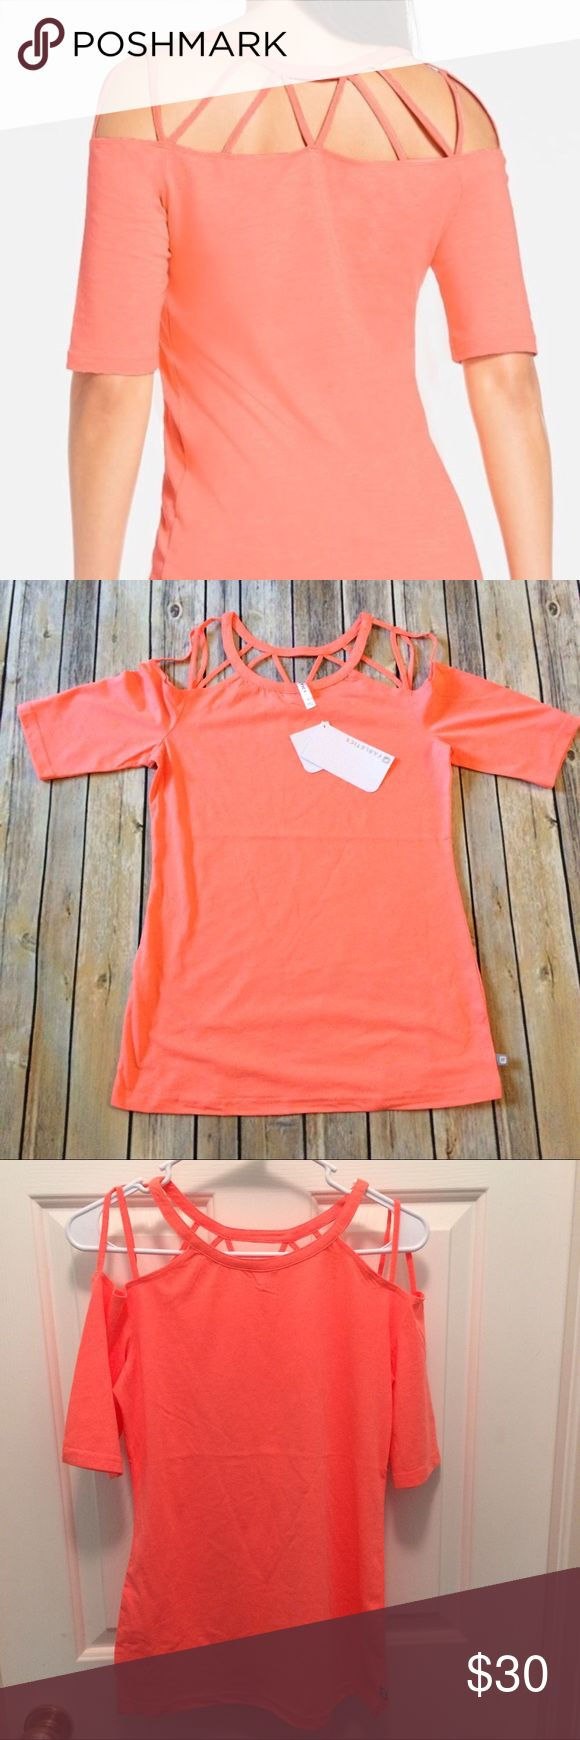 🔶Fabletics top Brand New! Bright coral orange  strappy top.           🔴Red dot items the price is firm 🔵 Blue dot items offers welcome 🔶 Yellow diamond discounted in bundles only.                                         Please make a bundle and request a private offer Fabletics Tops